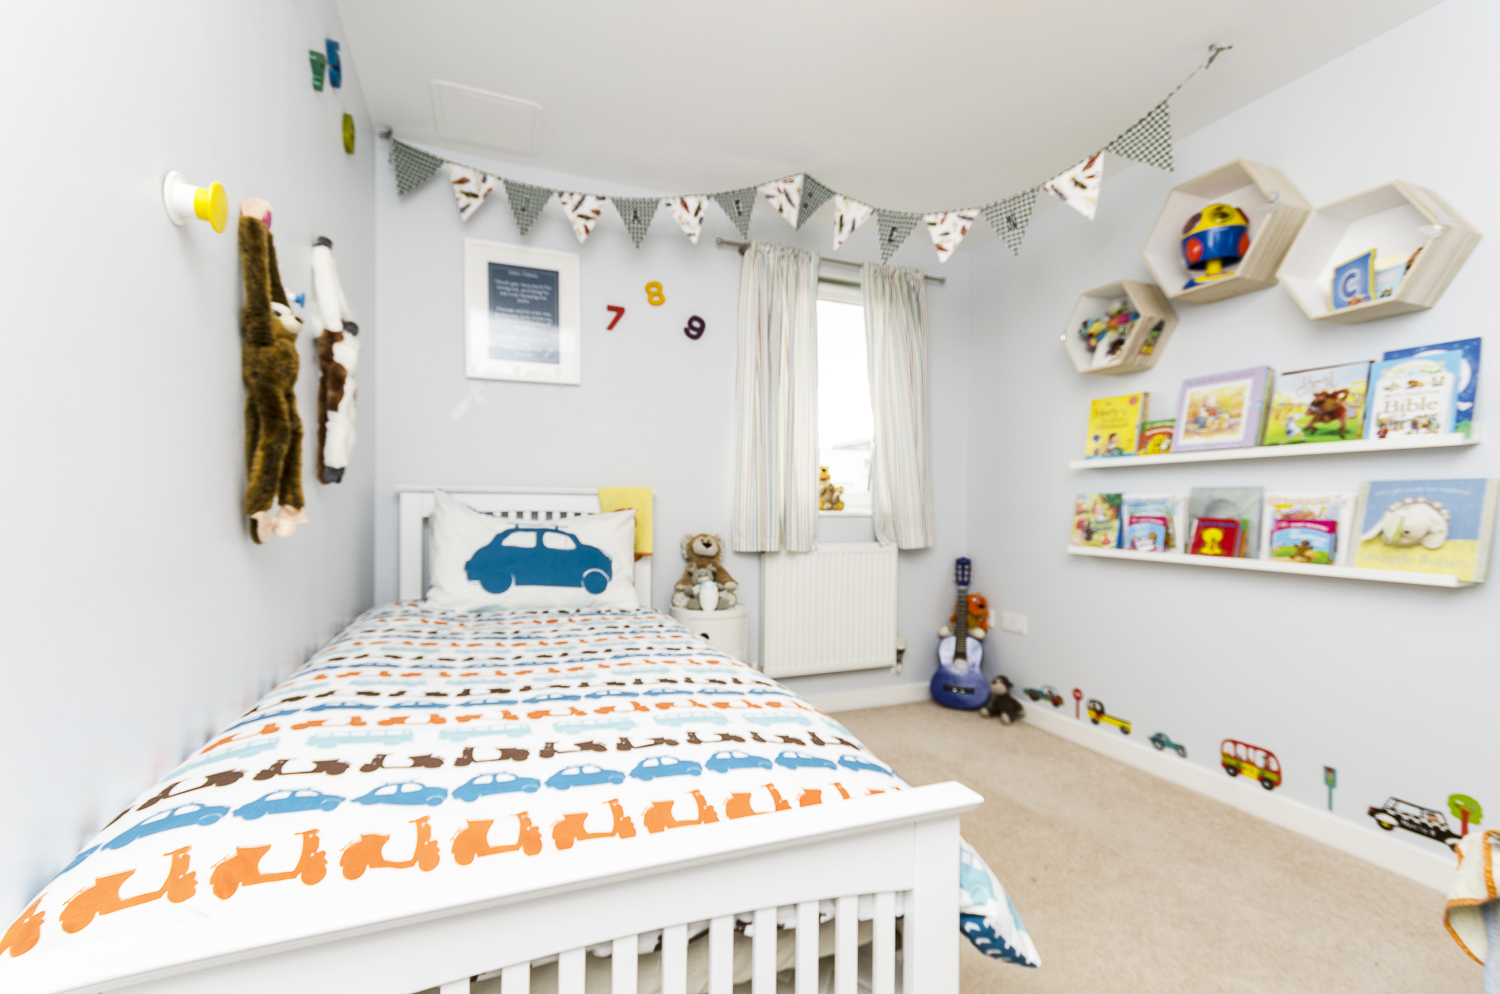 Children 39 s bedroom decorating ideas playing in style - Kids bedroom decoration ideas ...